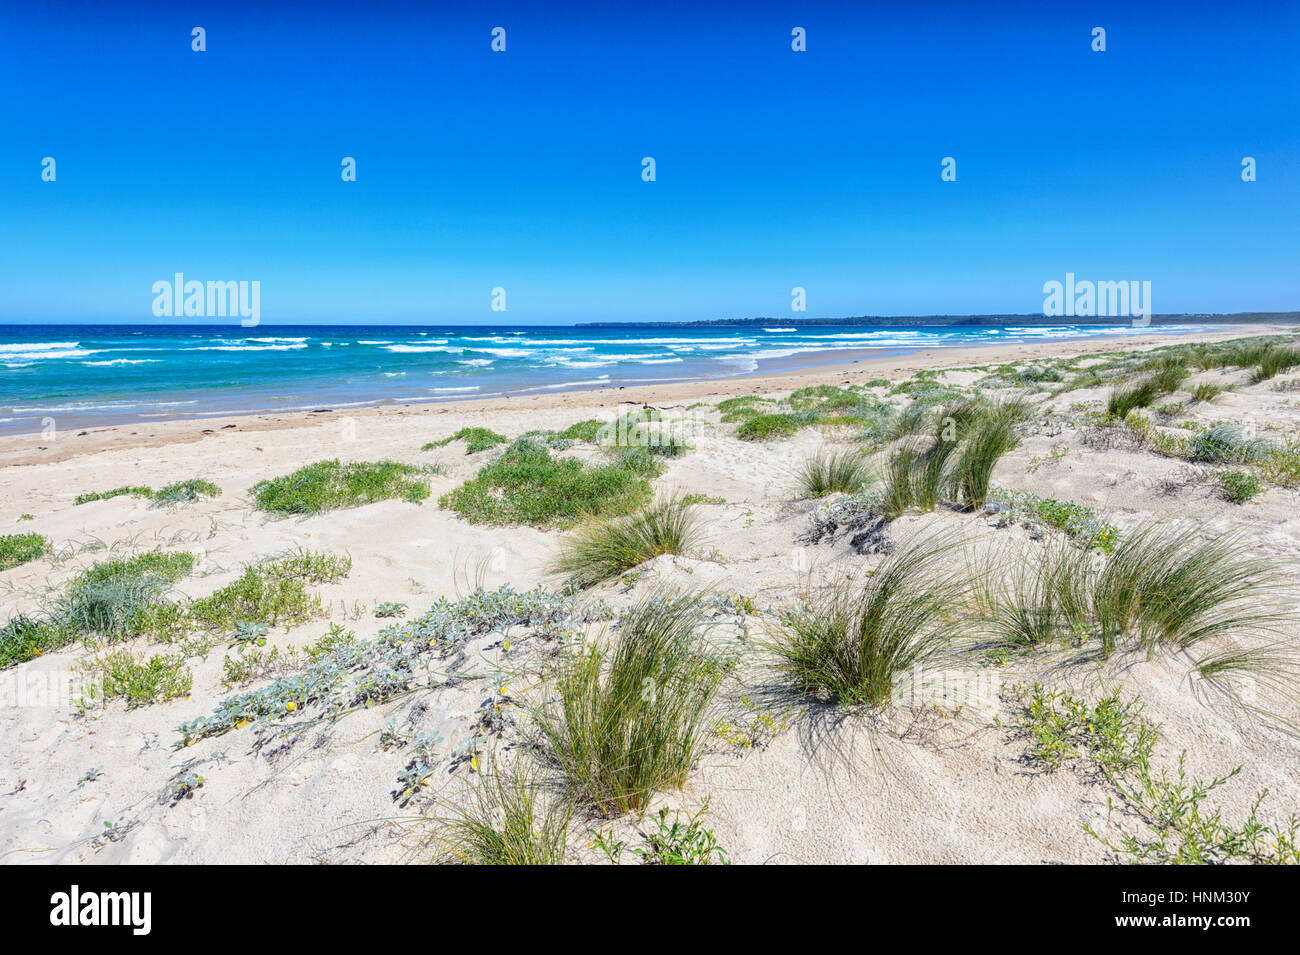 Plage de sable au lac Conjola, Shoalhaven, Côte Sud, New South Wales, NSW, Australie Photo Stock